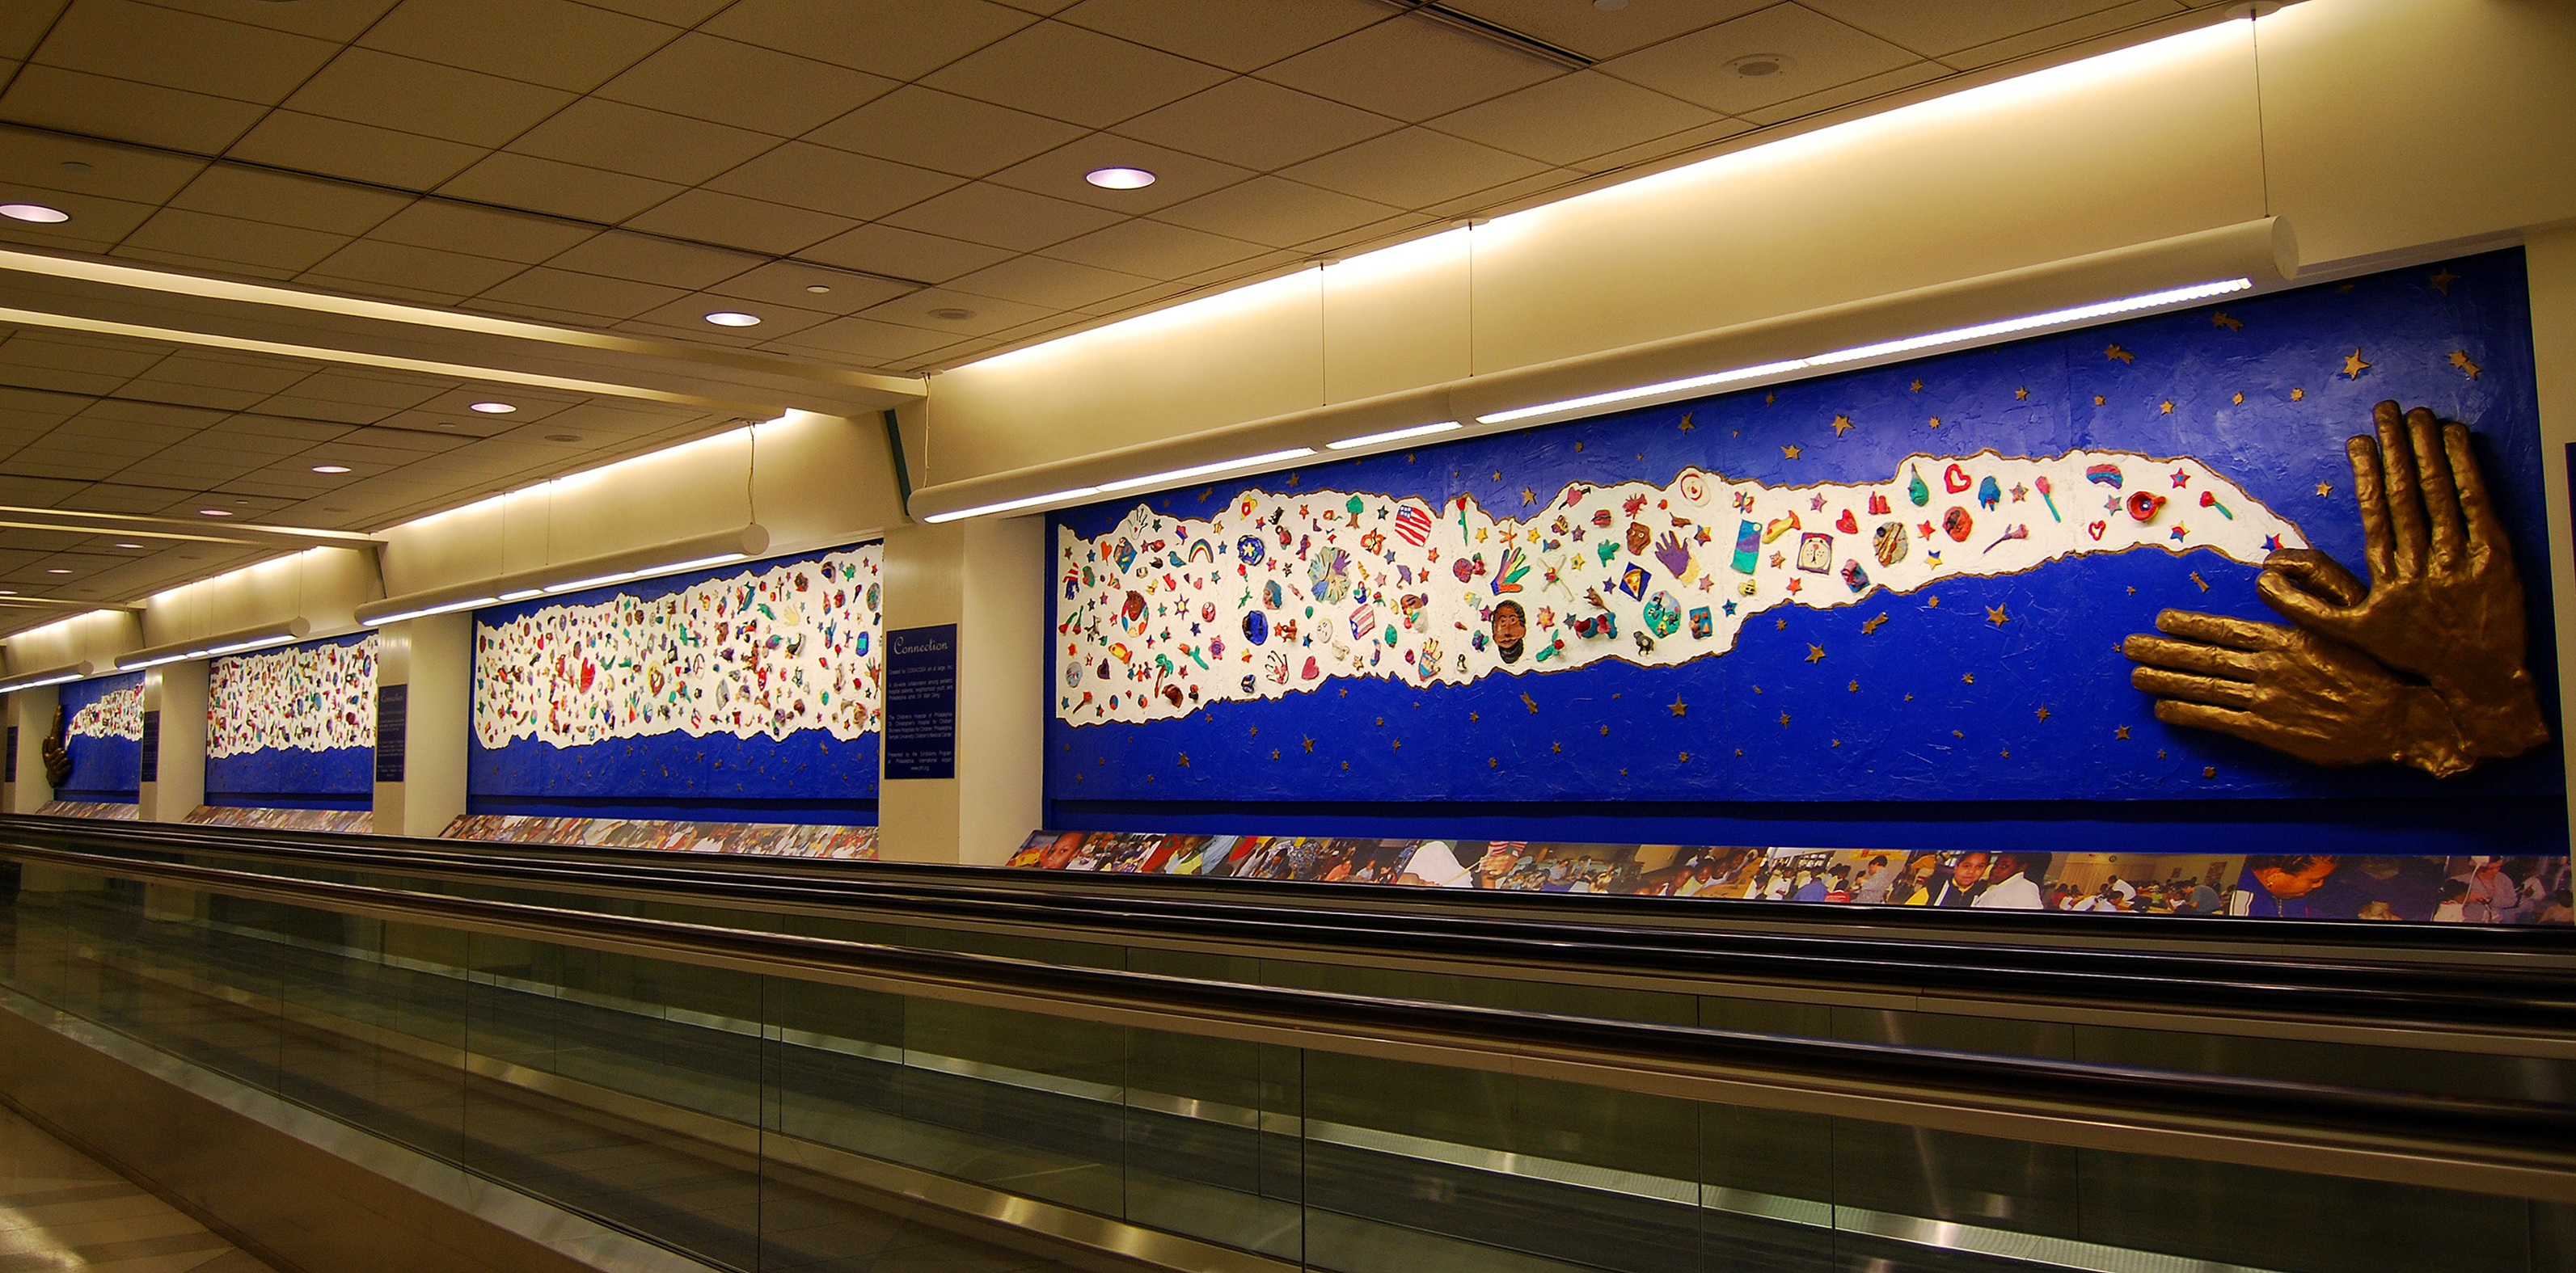 Mural on wall of airport.